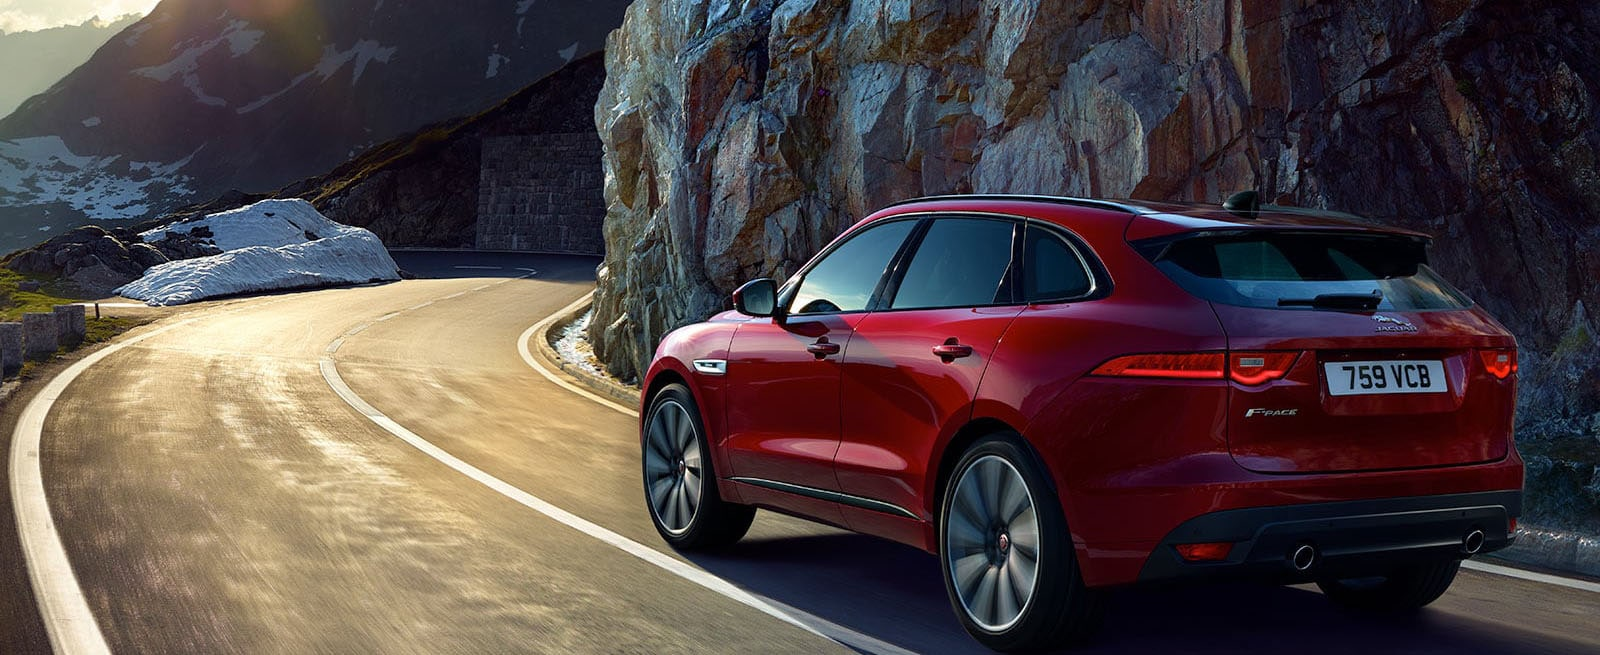 Red F-Pace Driving Along a Mountainous Road